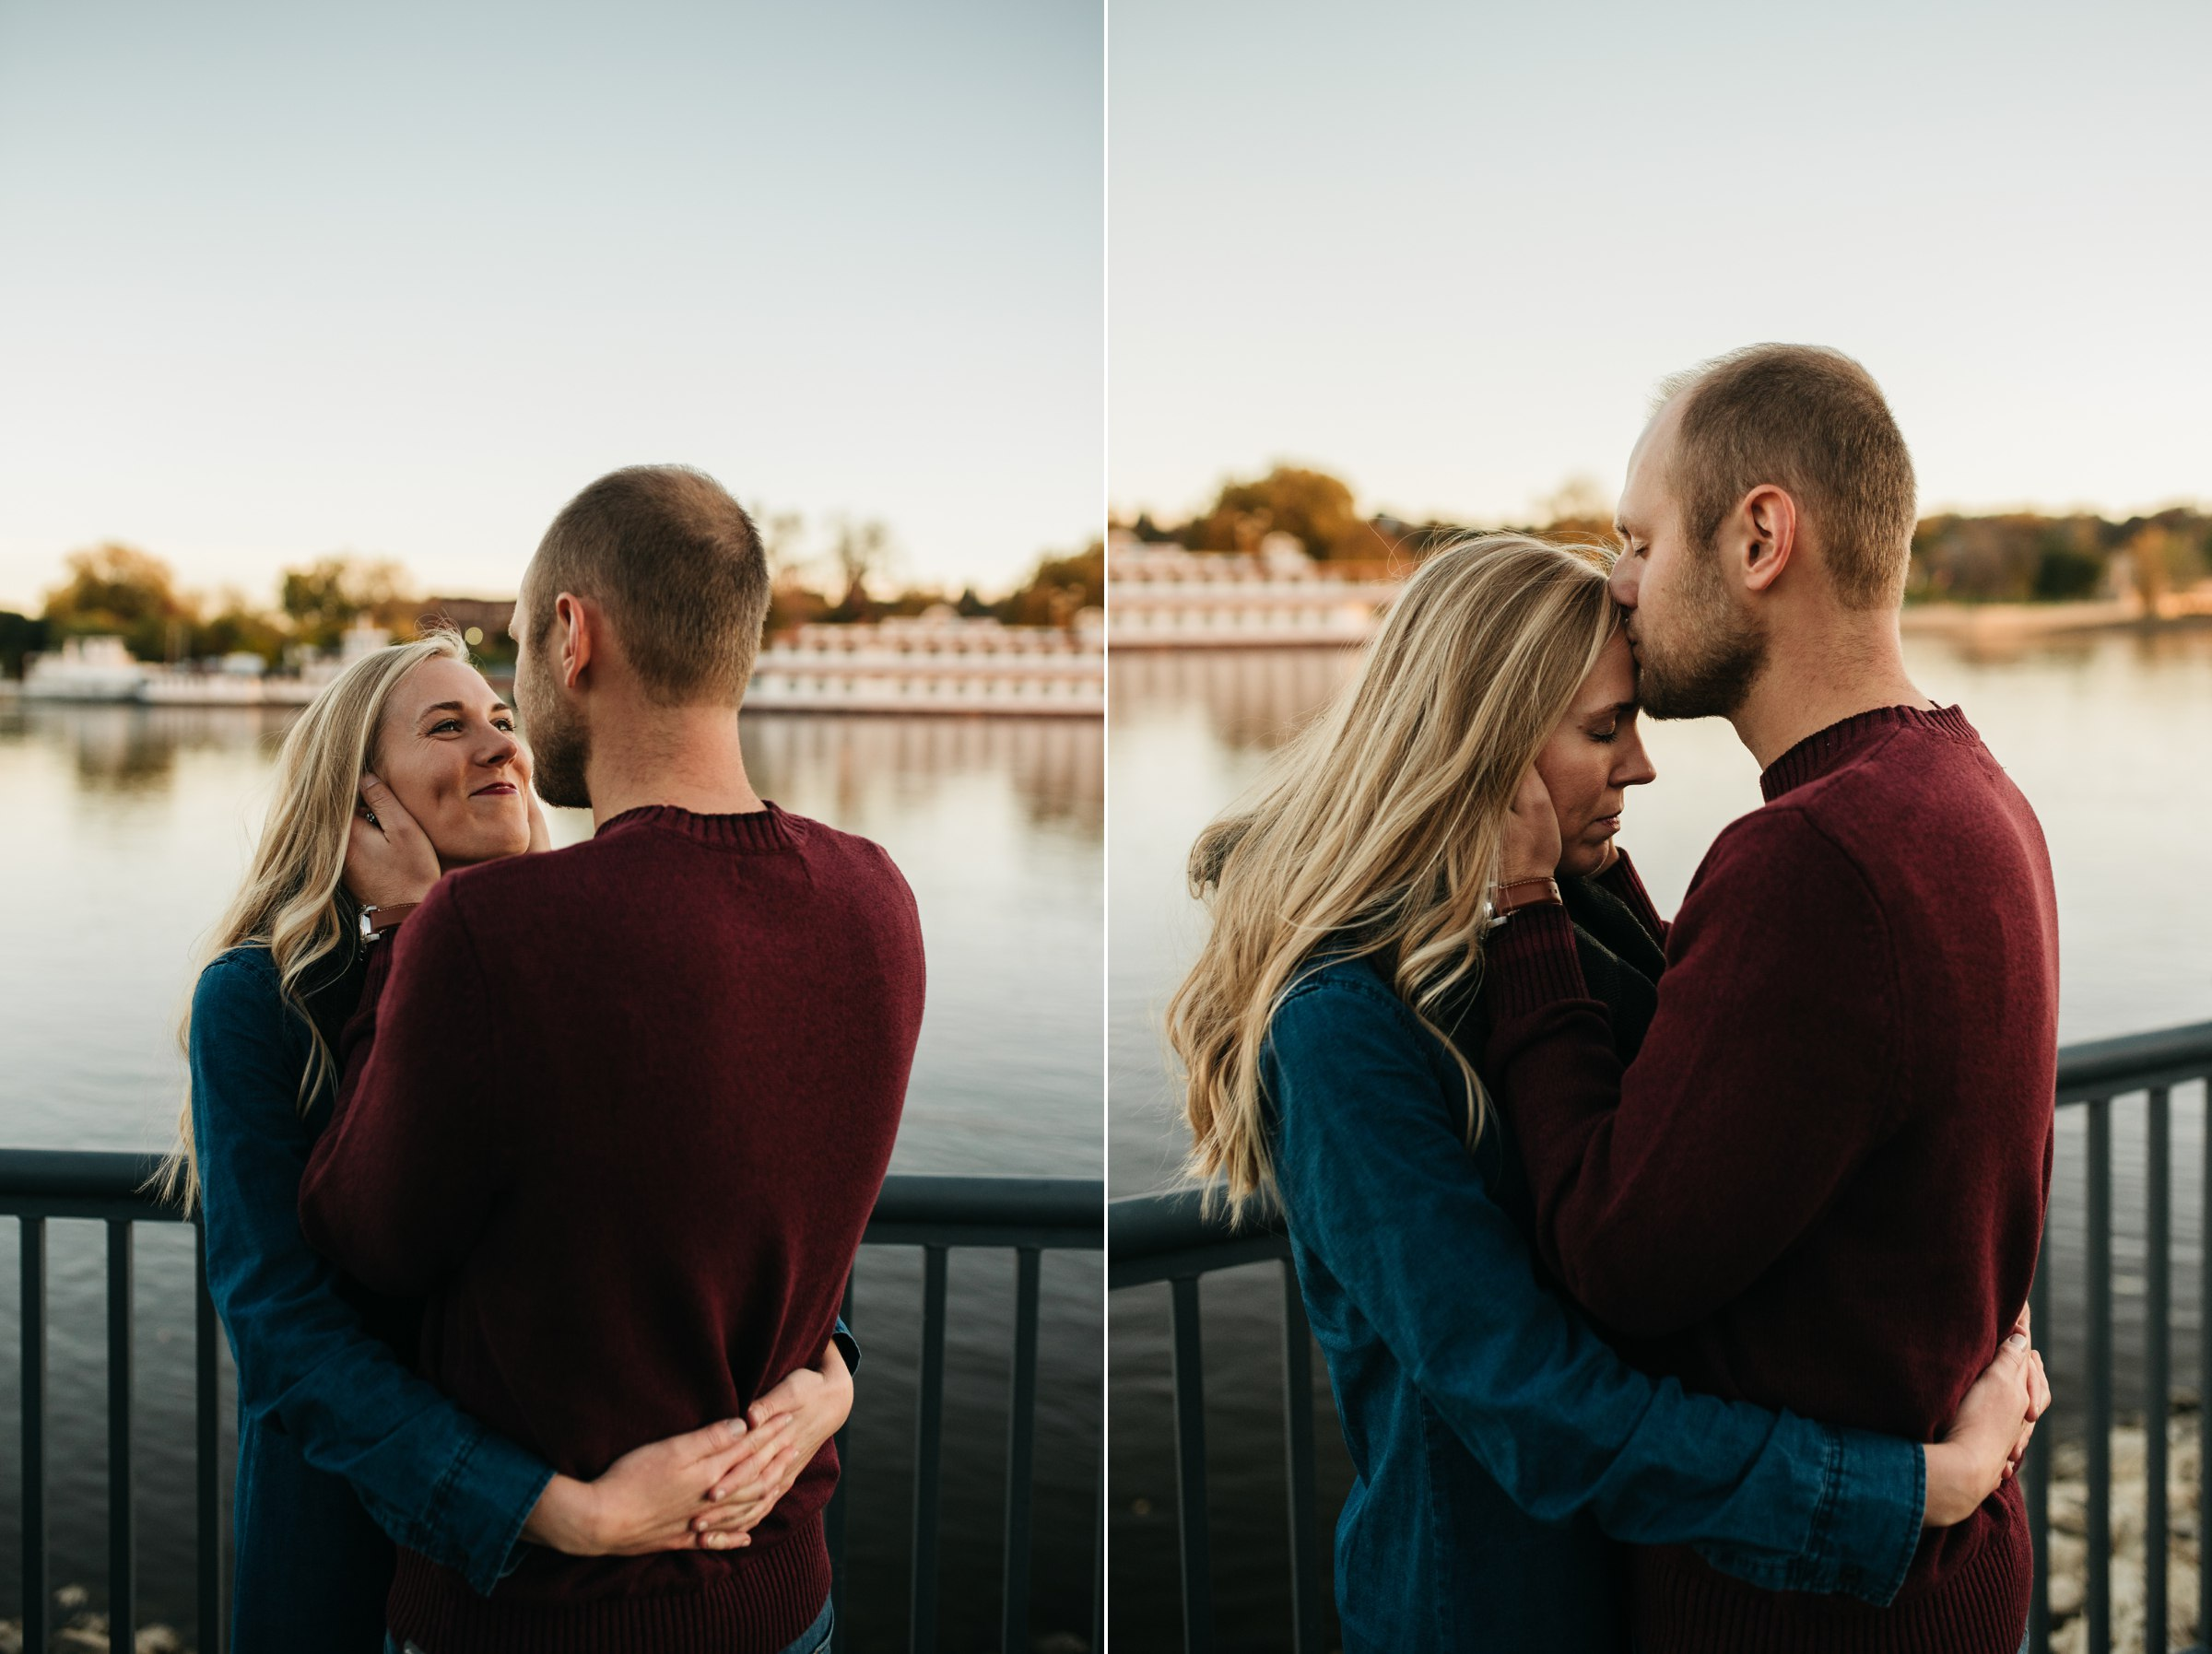 caroline and taylor minneapolis minnesota texas austin dallas houston wedding elopement destination intimate adventurous couple best photographer_0028.jpg